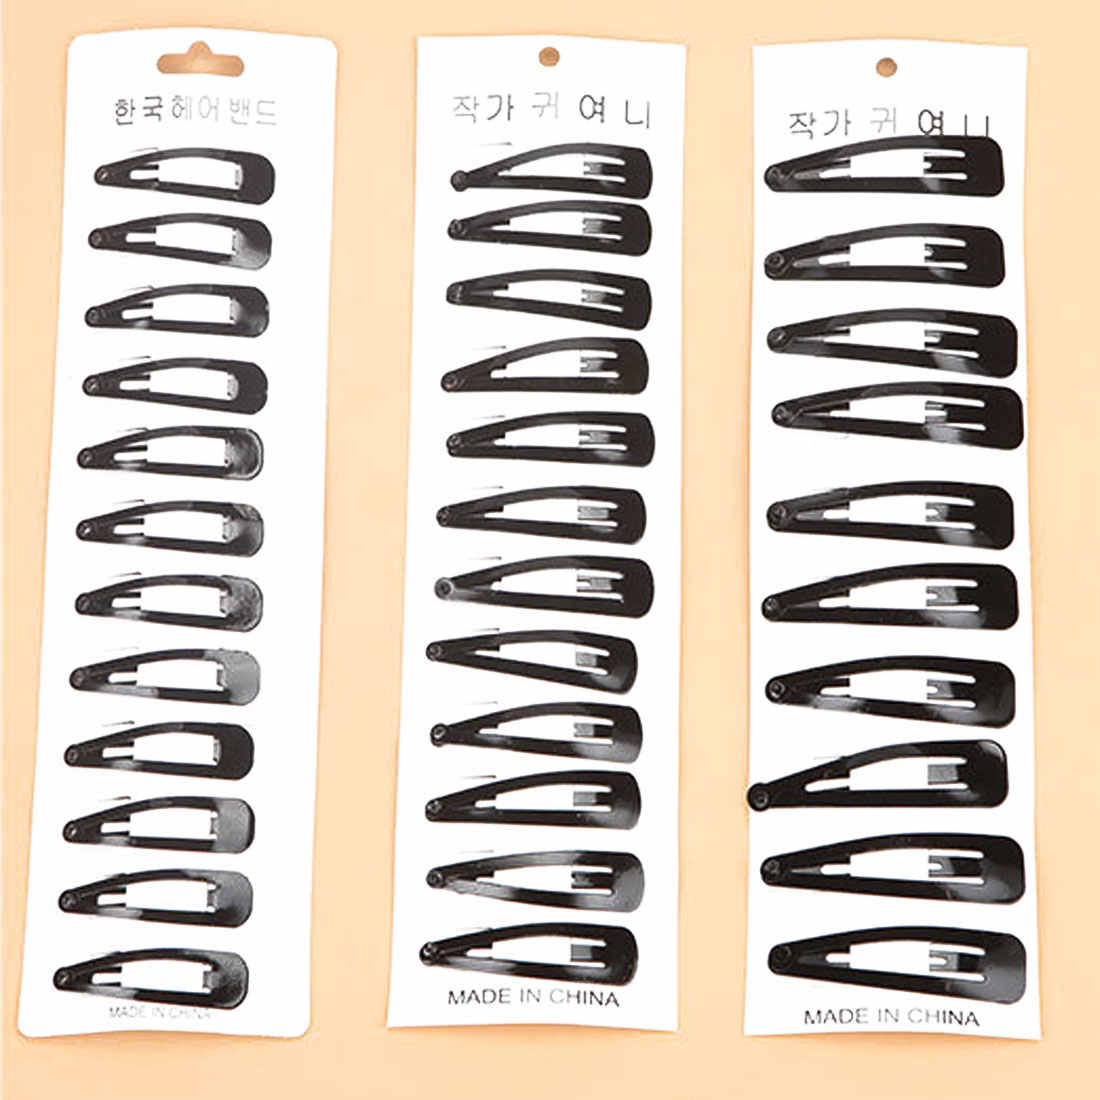 Paint hair styling clip fashion nostalgic Korean bangs black BB clip water drop clip hair styling accessories DIY hair clip